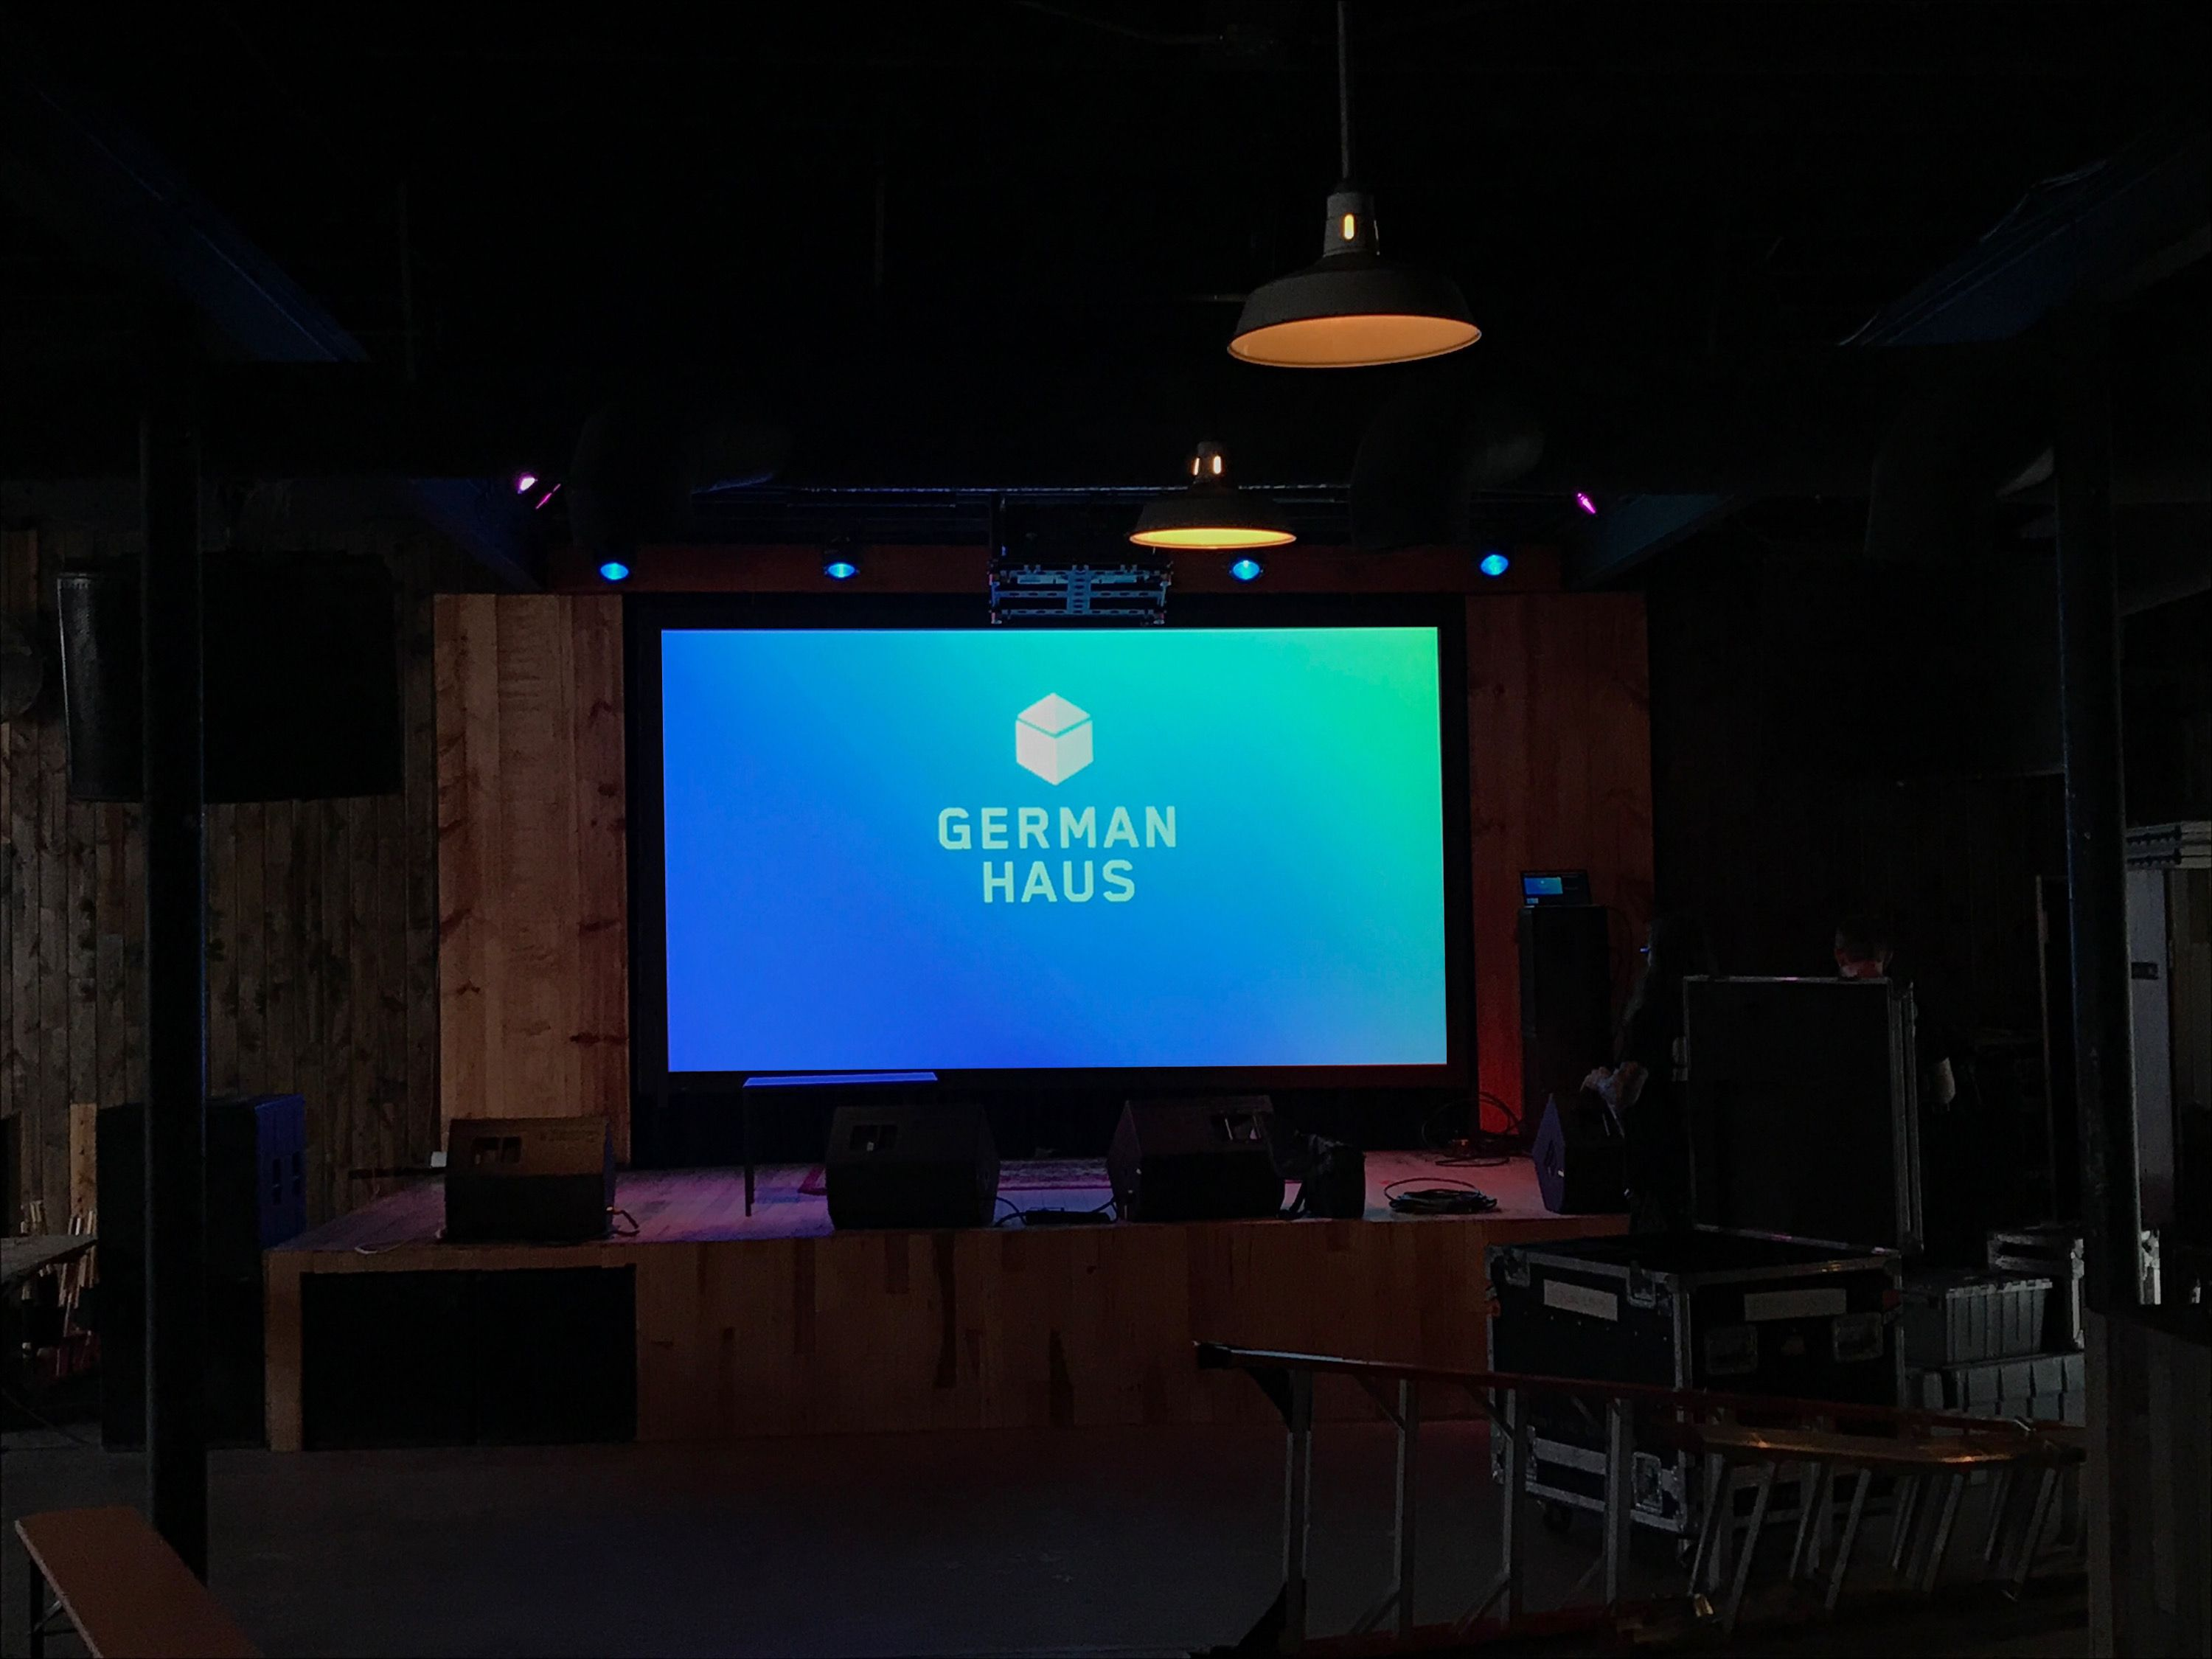 Projection Screen with German Haus Logo Display